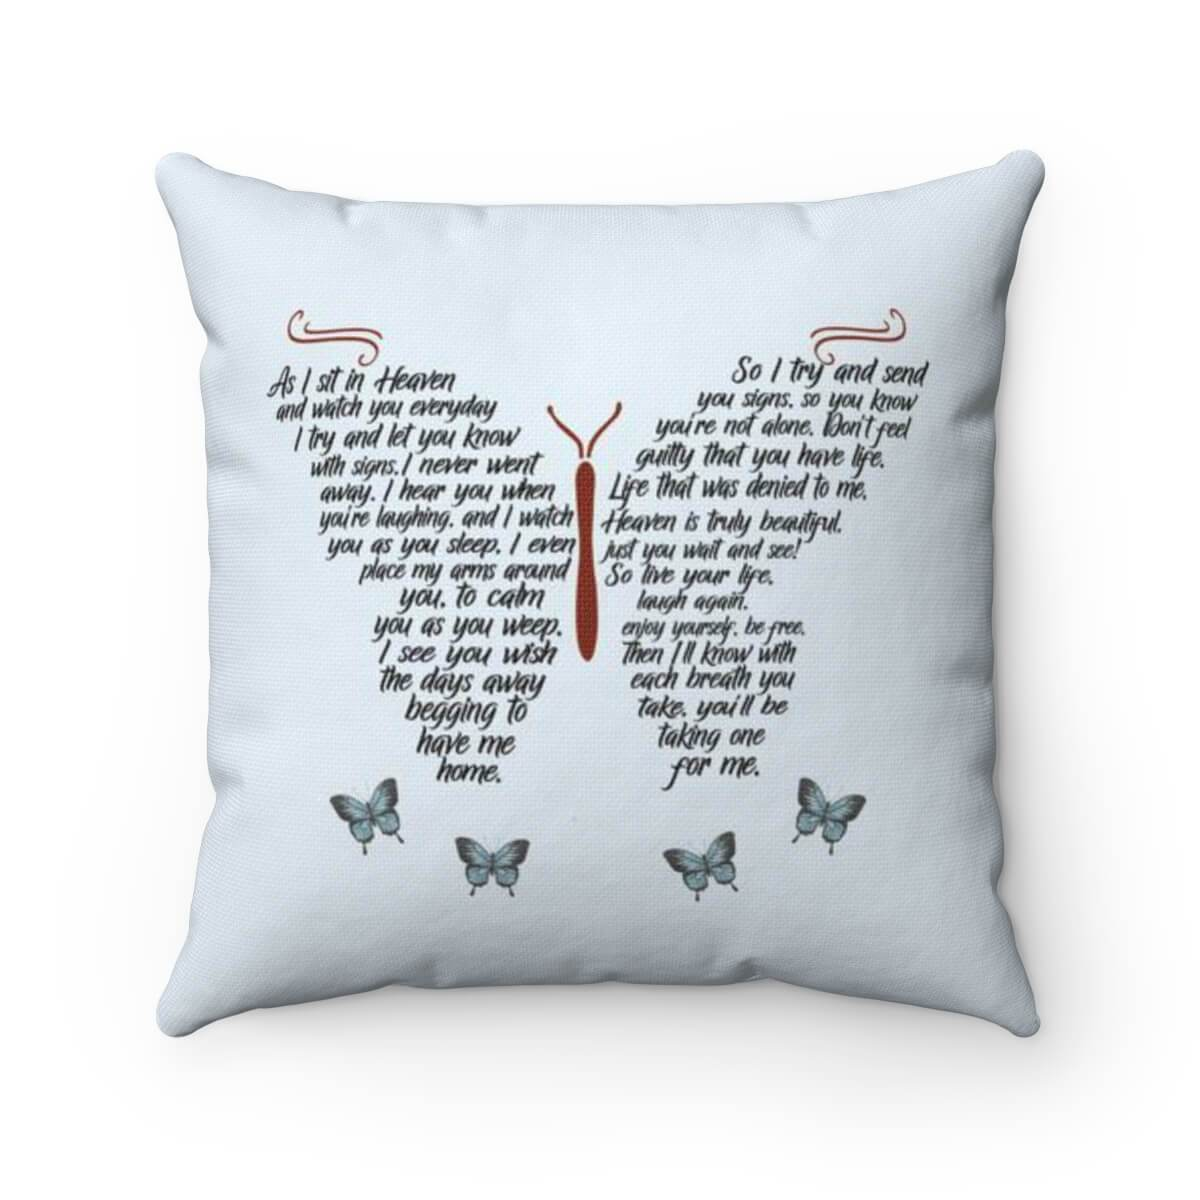 As I Sit In Heaven Poem - Pillow